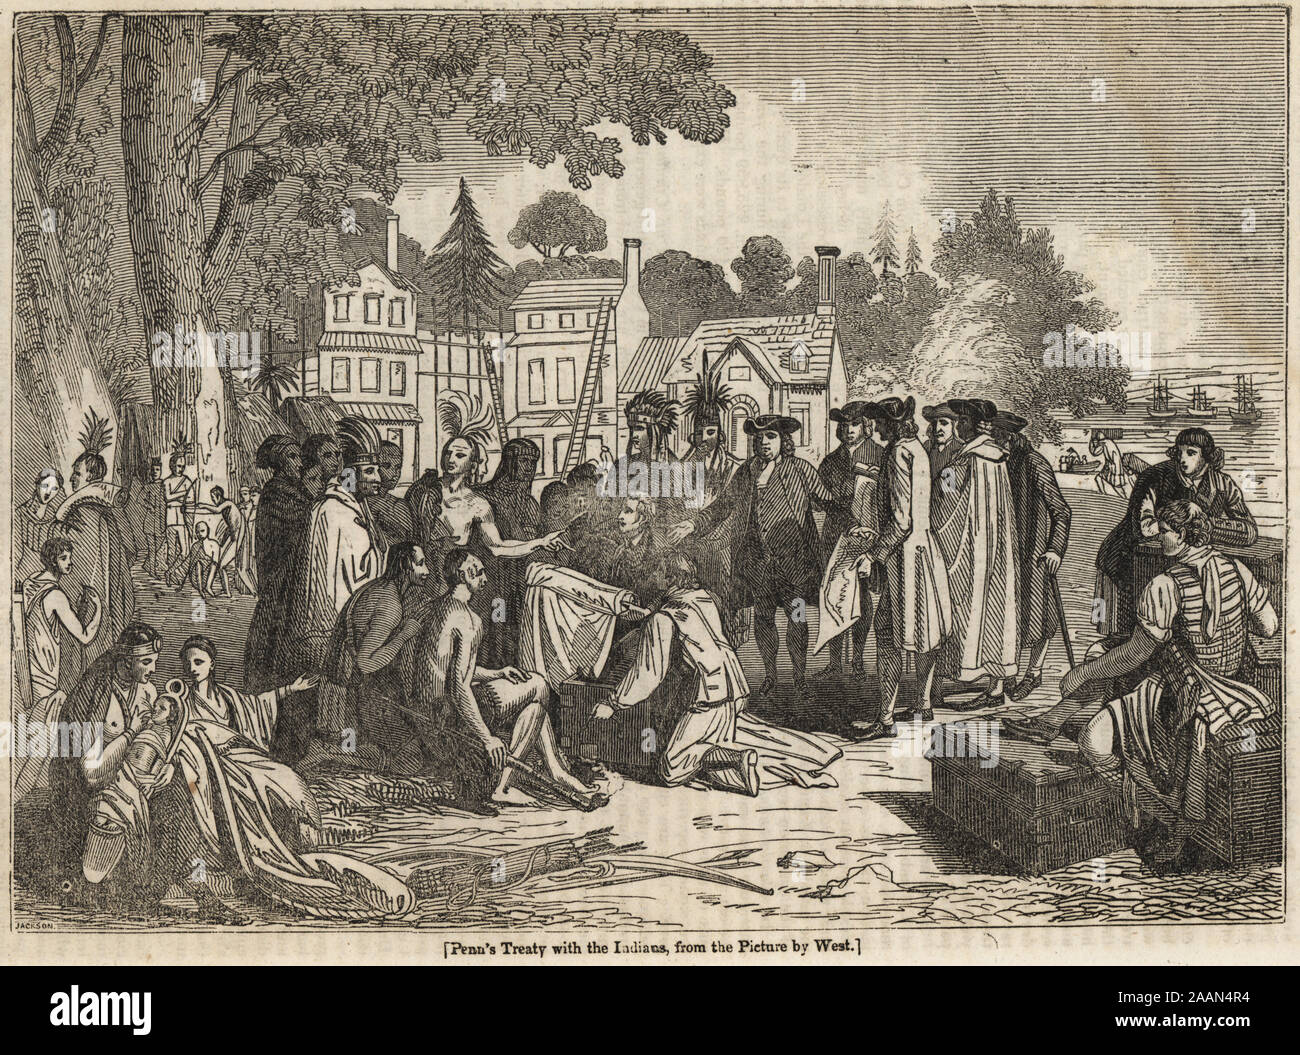 William Penn with Chief Tamanend of the Lenape Delaware Nation under an elm tree in Shackamaxon, Pennsylvania, 1683. William Penn's Treaty with the Indians, from the painting by Benjamin West. Woodblock engraving by J. Jackson from The Penny Magazine, of the Society for the Diffusion of Useful Knowledge, printed by William Clowes, Lambeth, 1833. Stock Photo